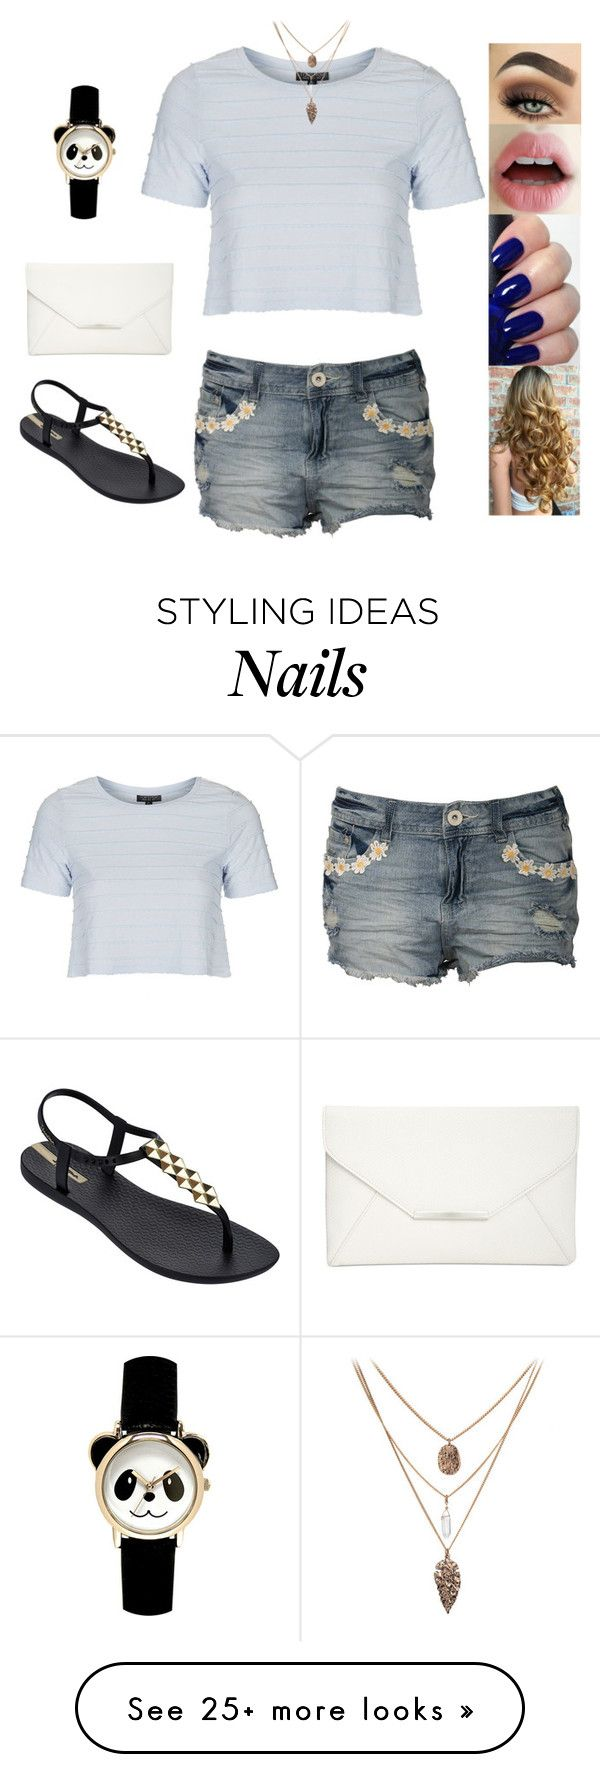 """Untitled #3740"" by sigalv on Polyvore featuring Topshop, Pilot, IPANEMA and Style & Co."